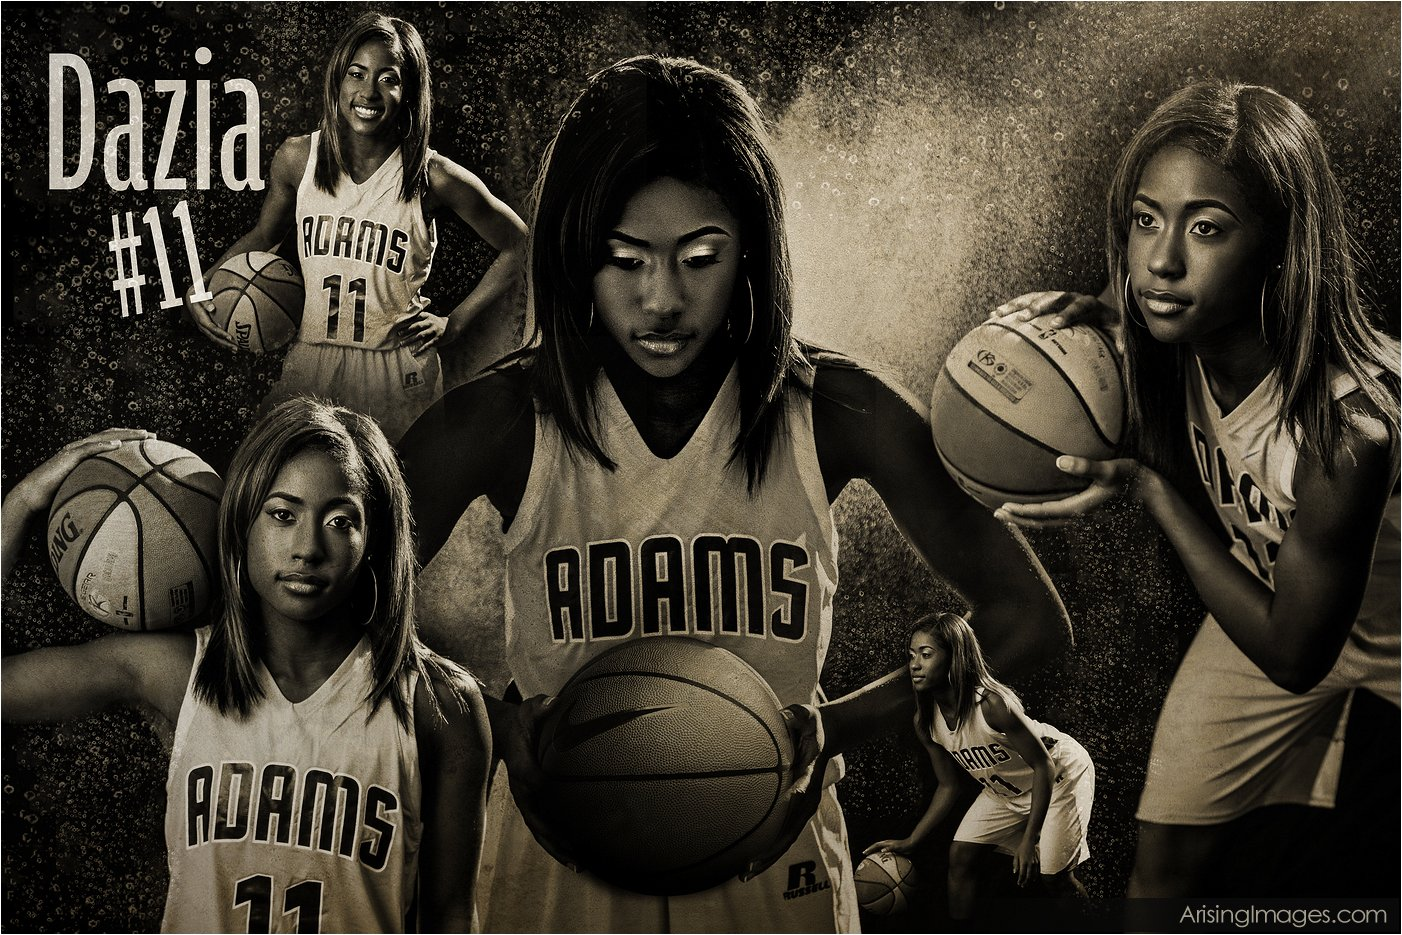 cool basketball senior picture sport poster